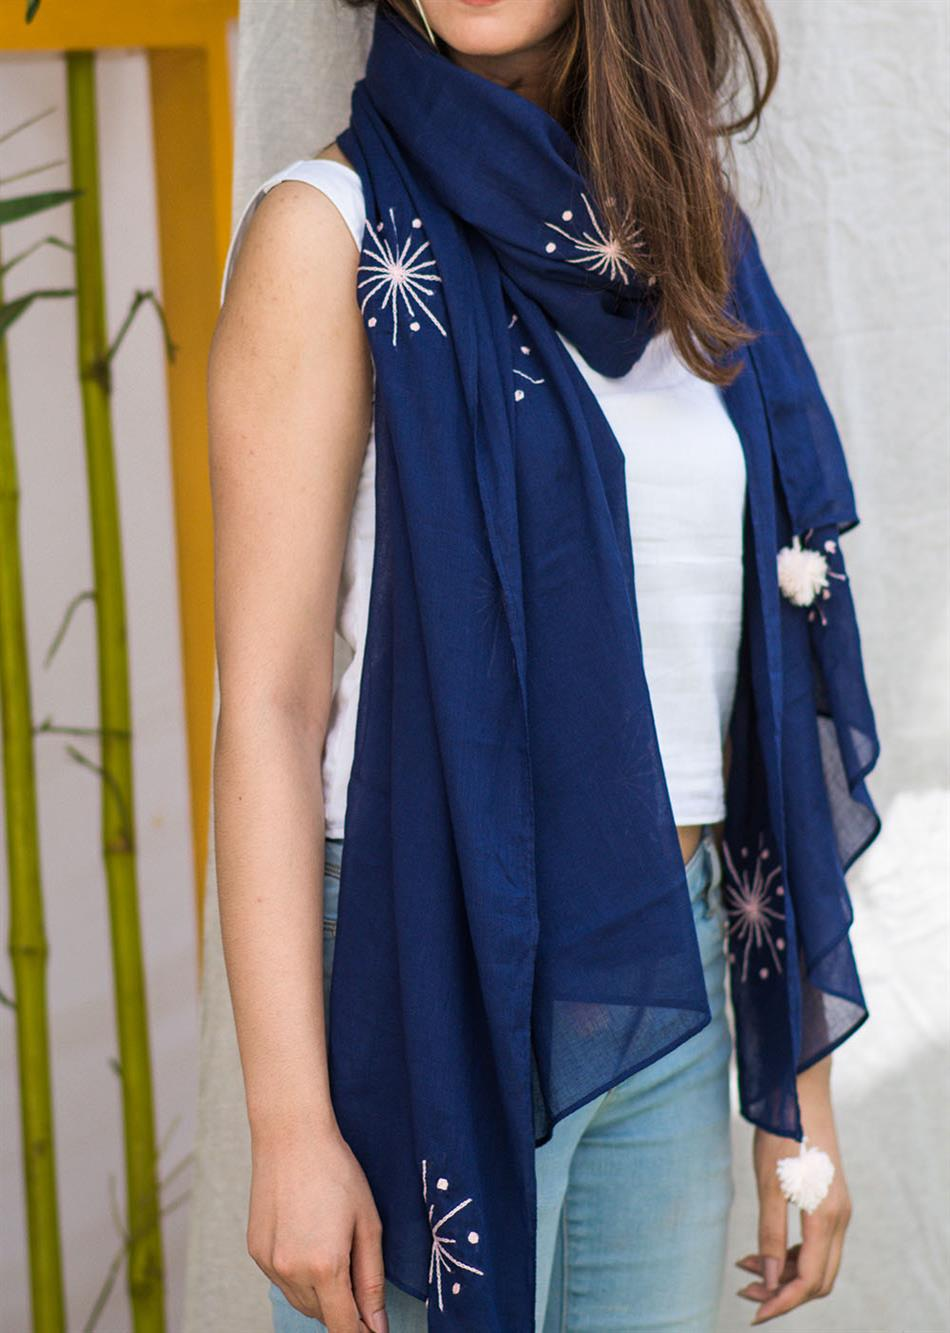 Balletic mood - Navy blue (Hand embroidered scarf)